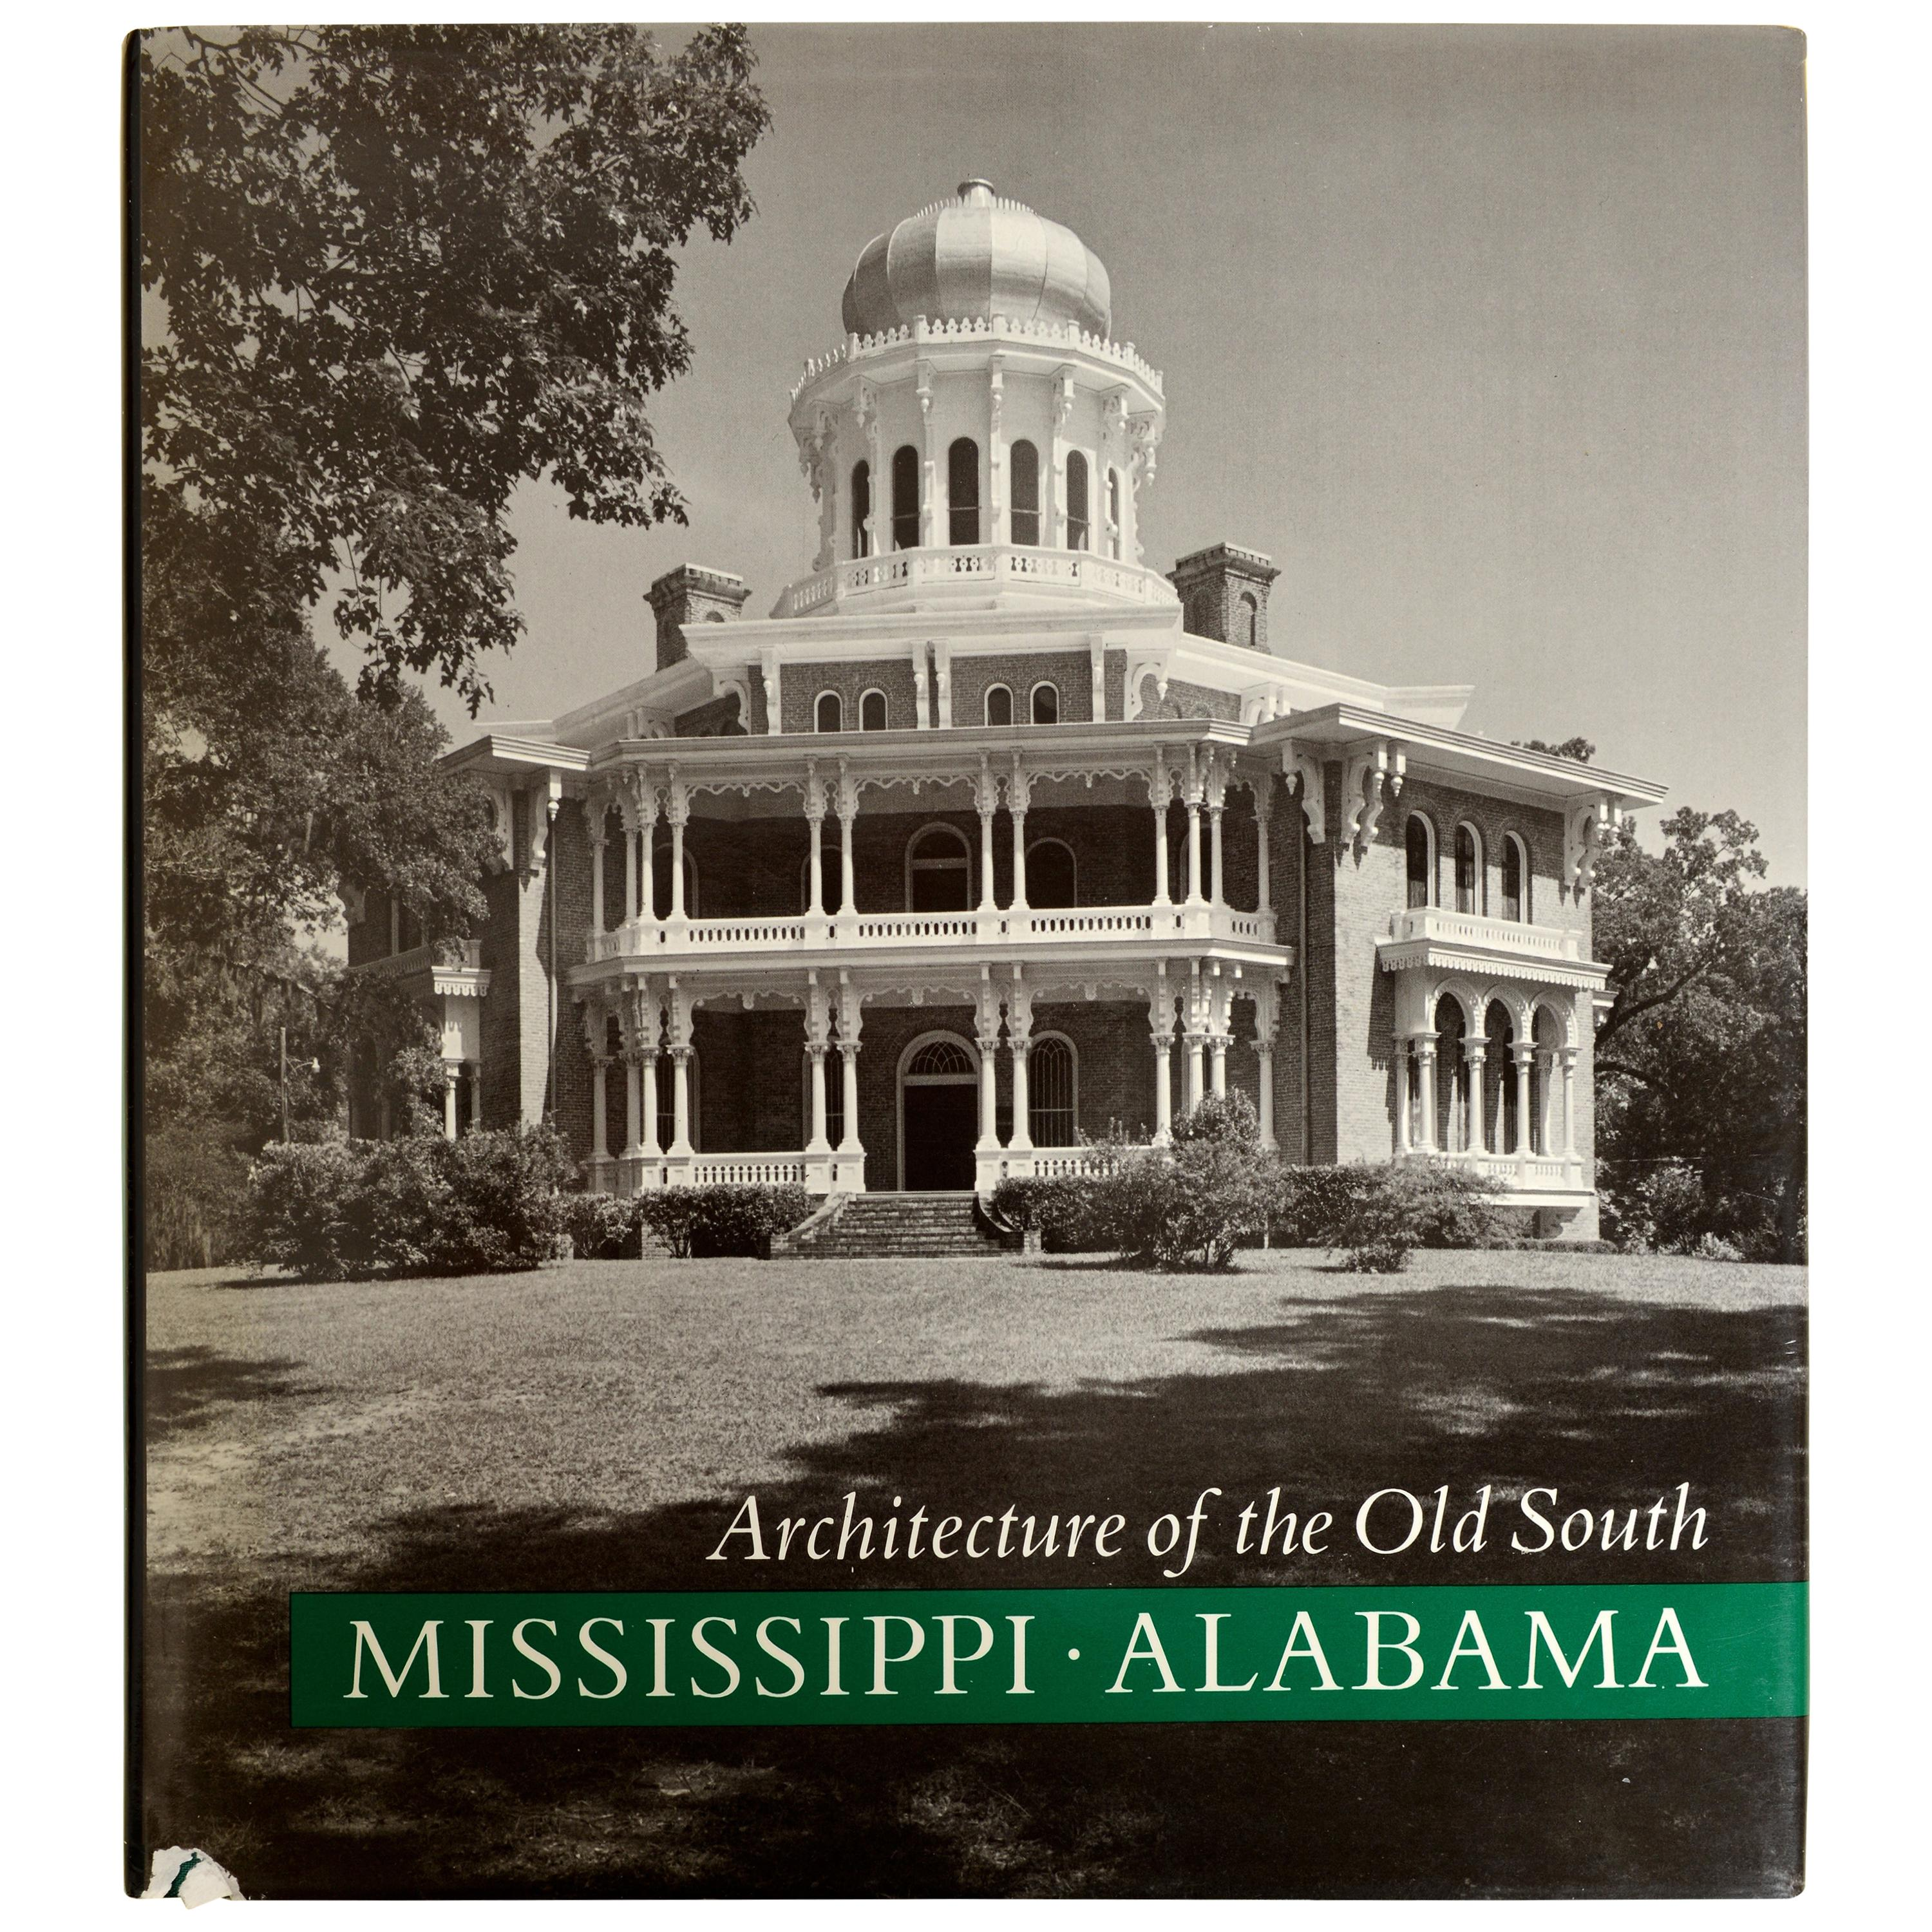 Architecture of the Old South Mississippi-Alabamba by Mills Lane, 1st Ed